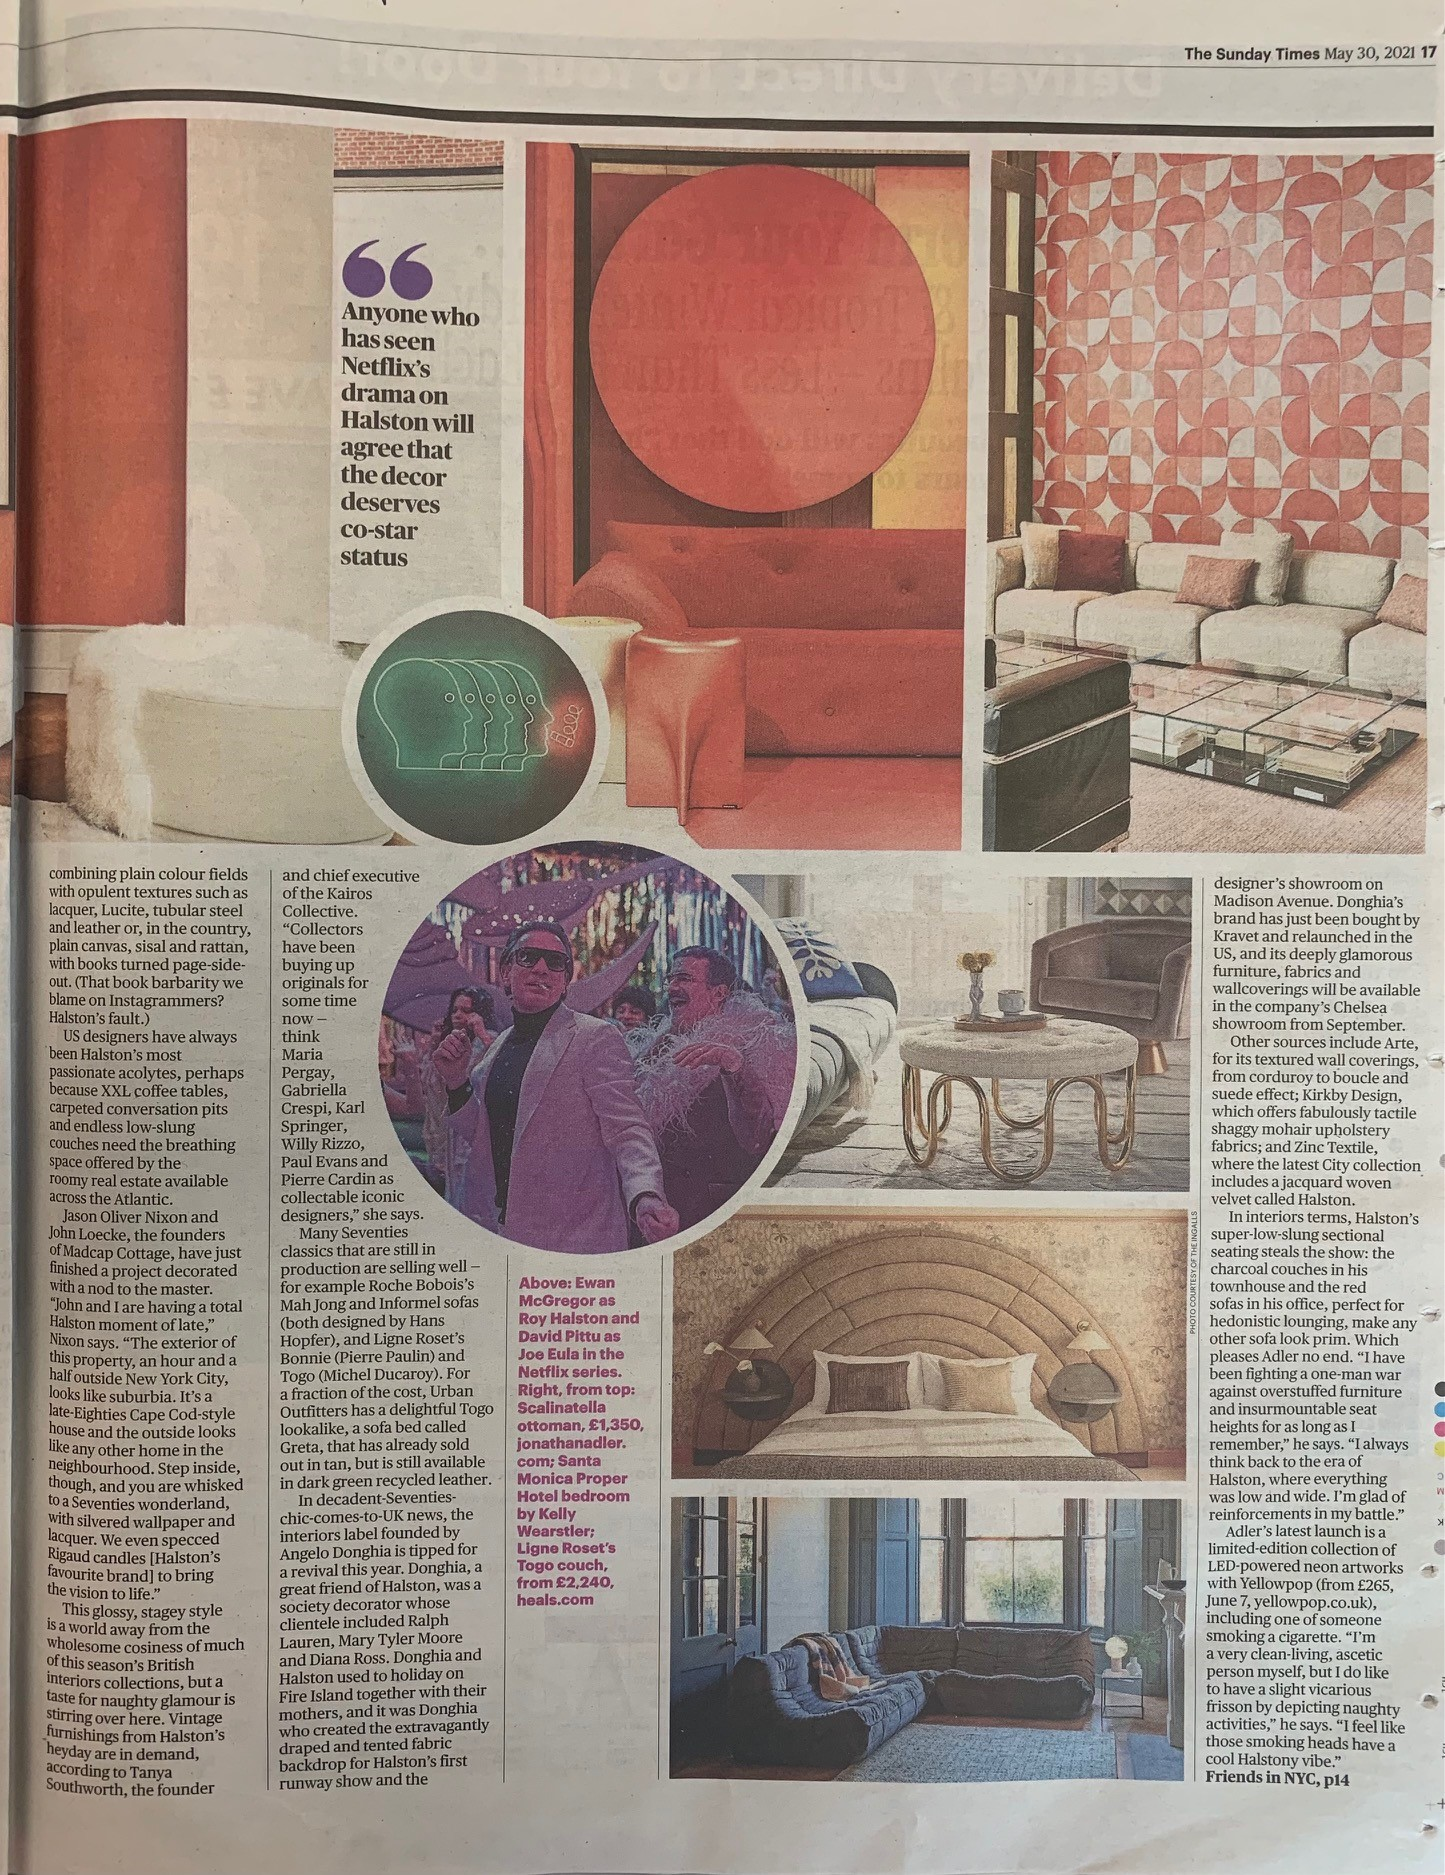 The Sunday Times are pining for the sleek, sexy Seventies with Jonathan Adler's Scalinatella ottoman and Ligne Roset's Togo